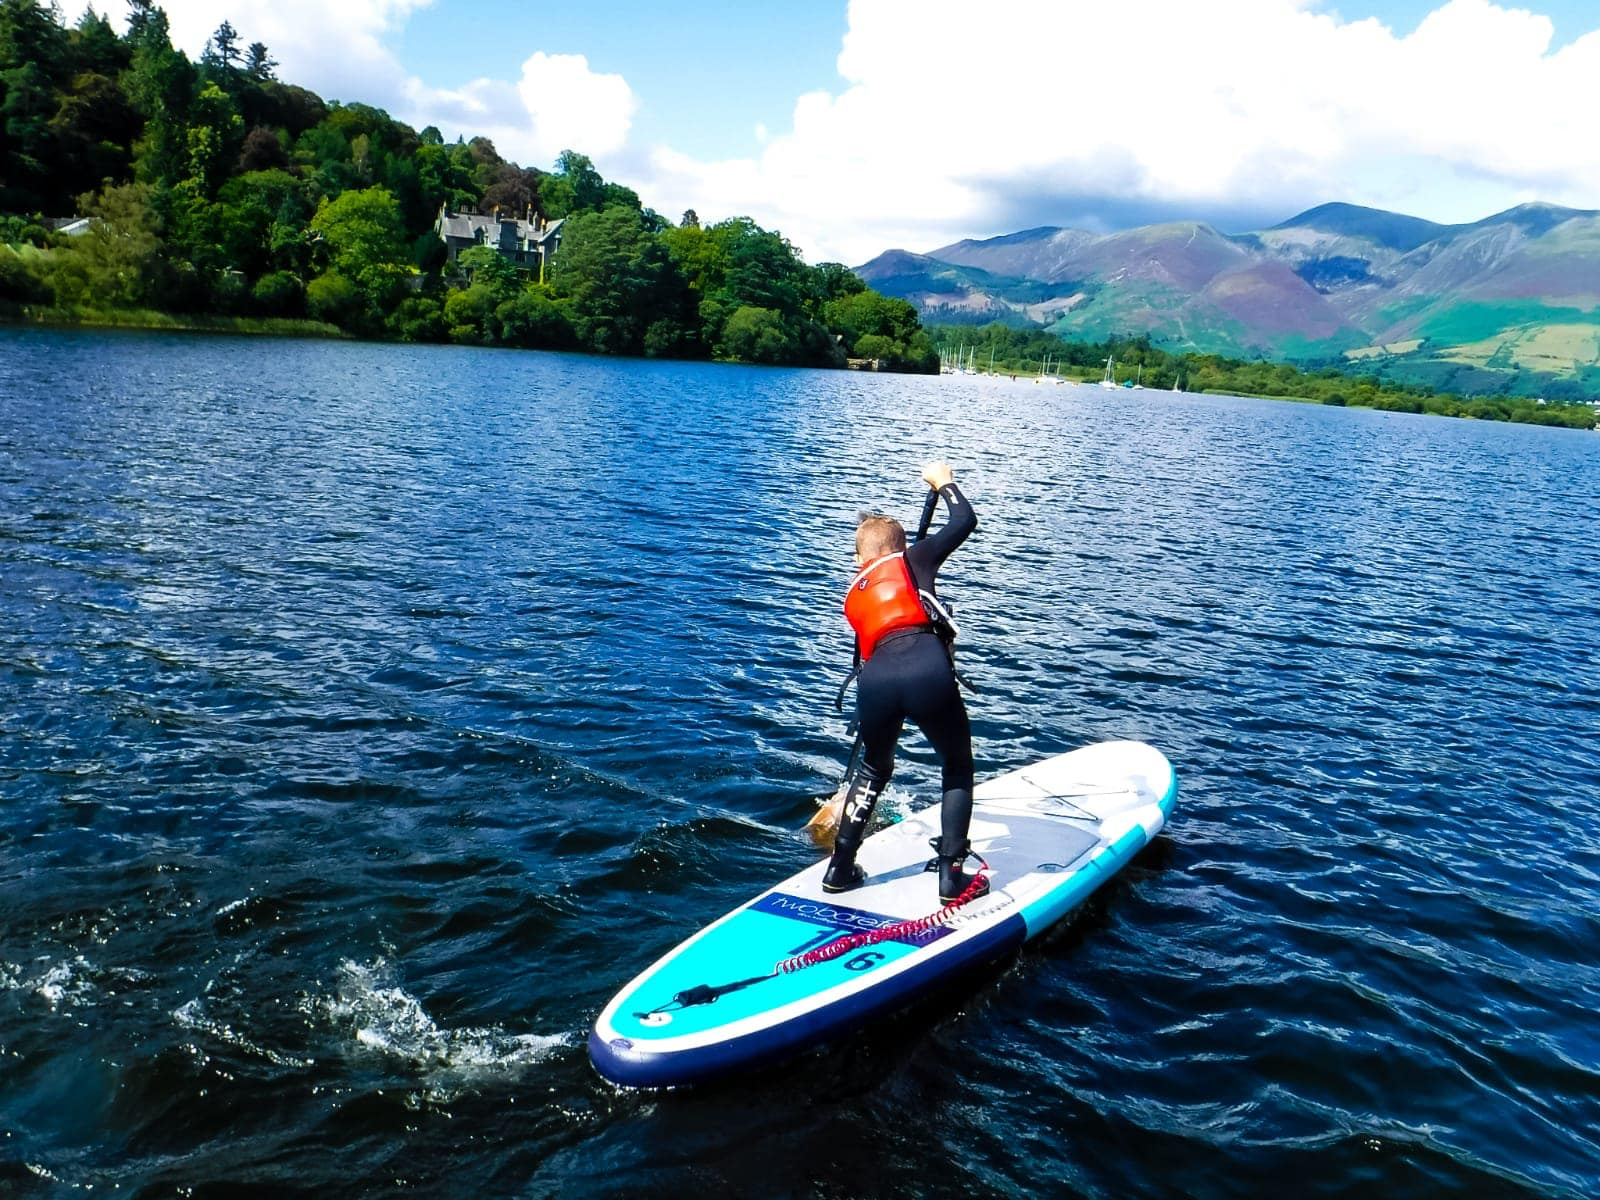 Derwentwater paddle boarding experience: SUP in the Lake District